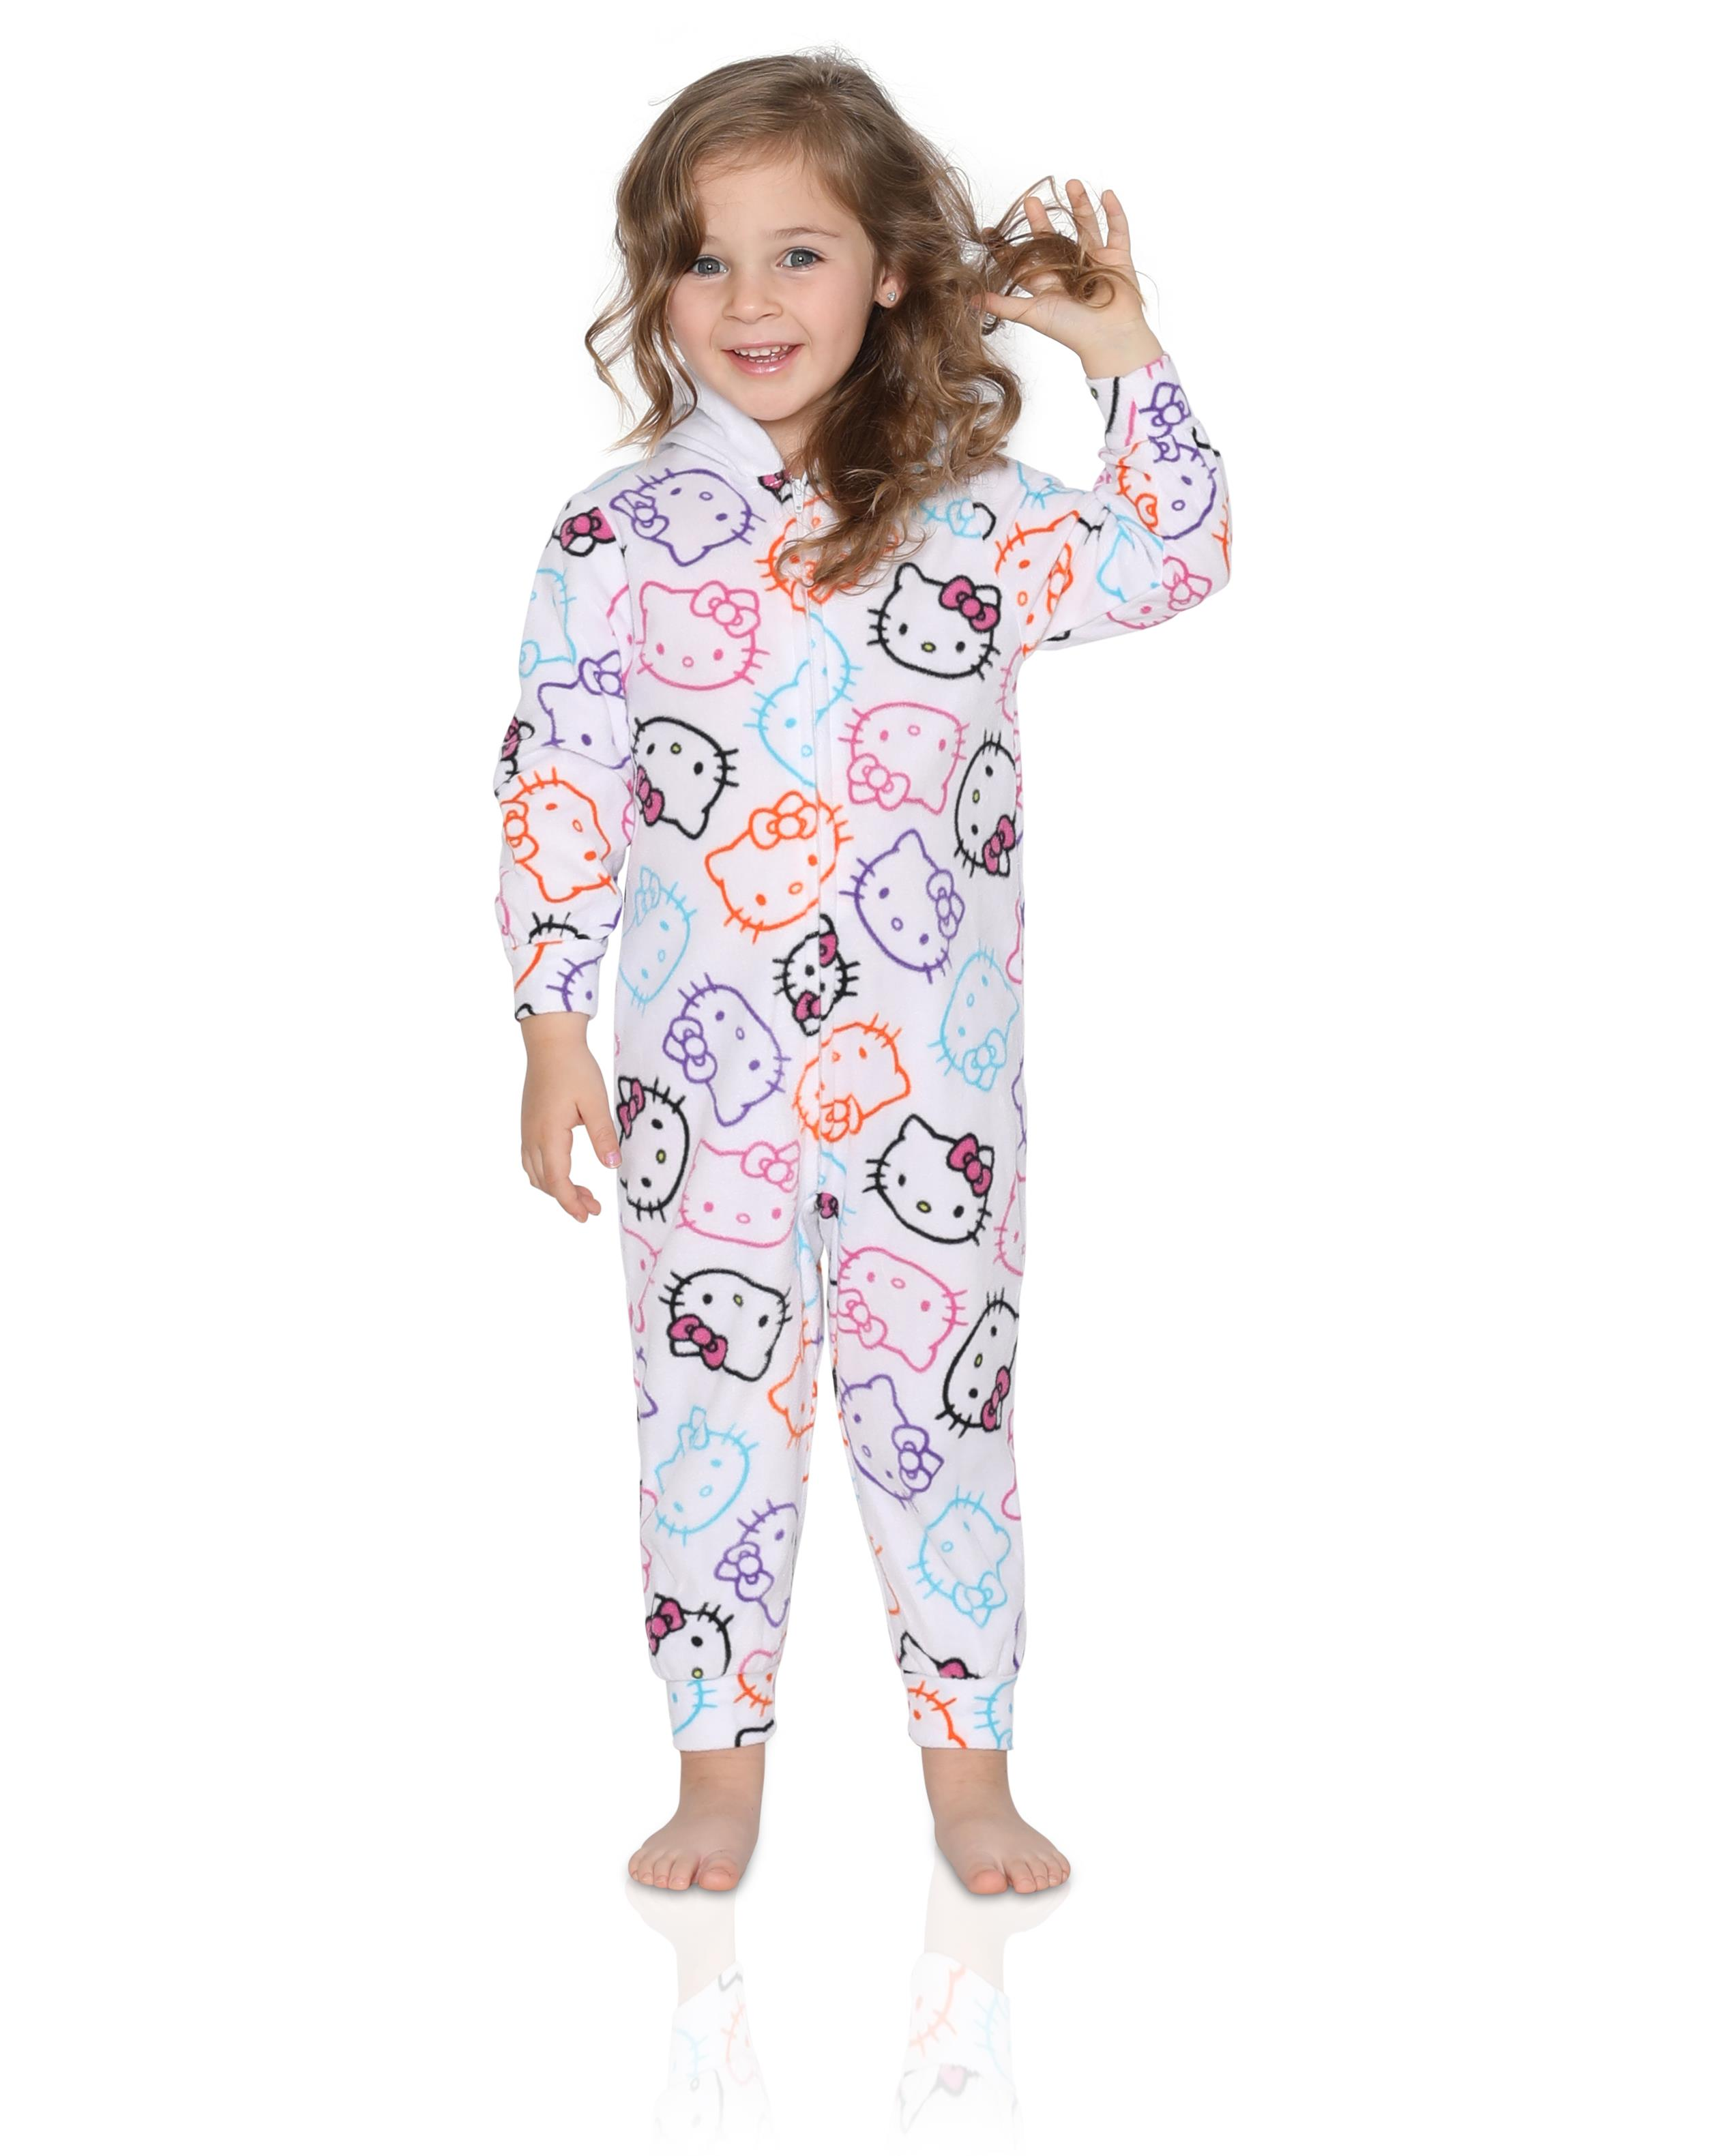 929747a4e Hello Kitty Little Girls Onesie Footed Pajama